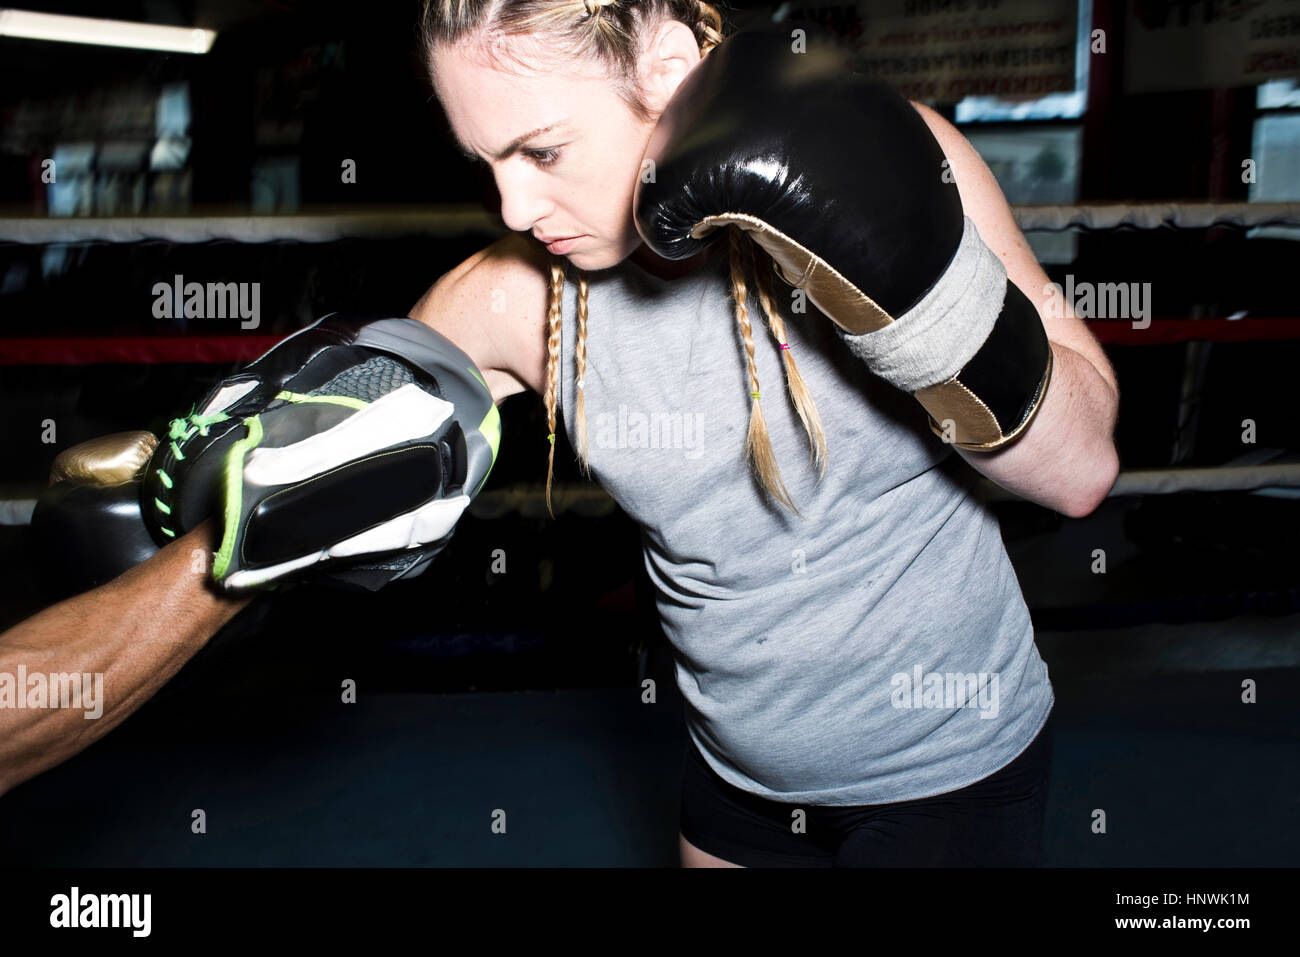 Female boxer punching her trainer's boxing mitt in boxing ring - Stock Image